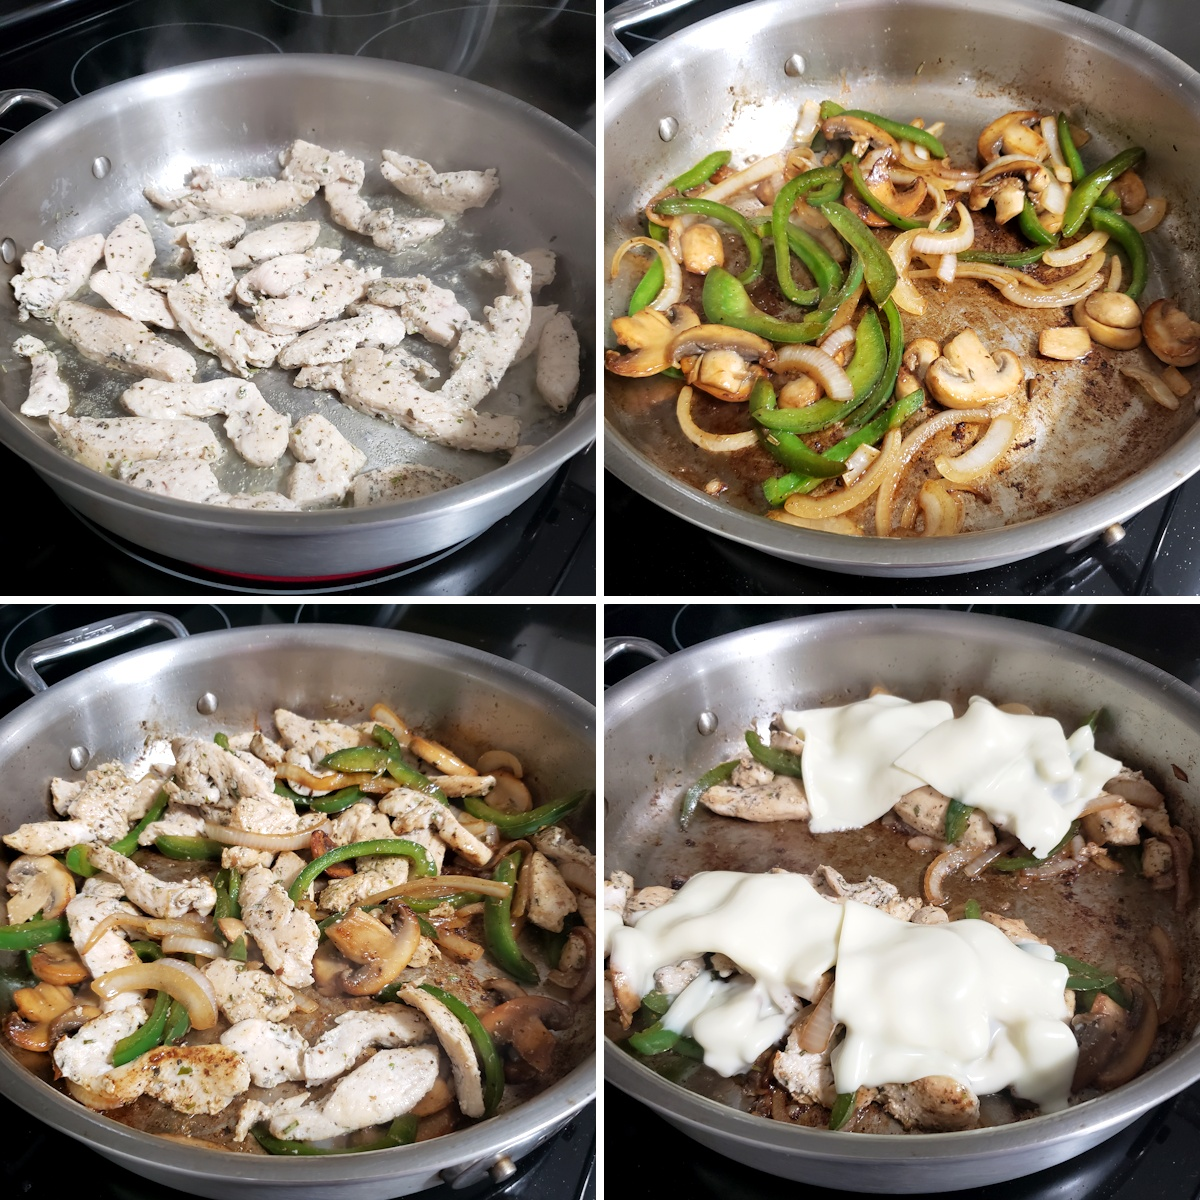 Cooking chicken cheesesteaks in a saute pan.